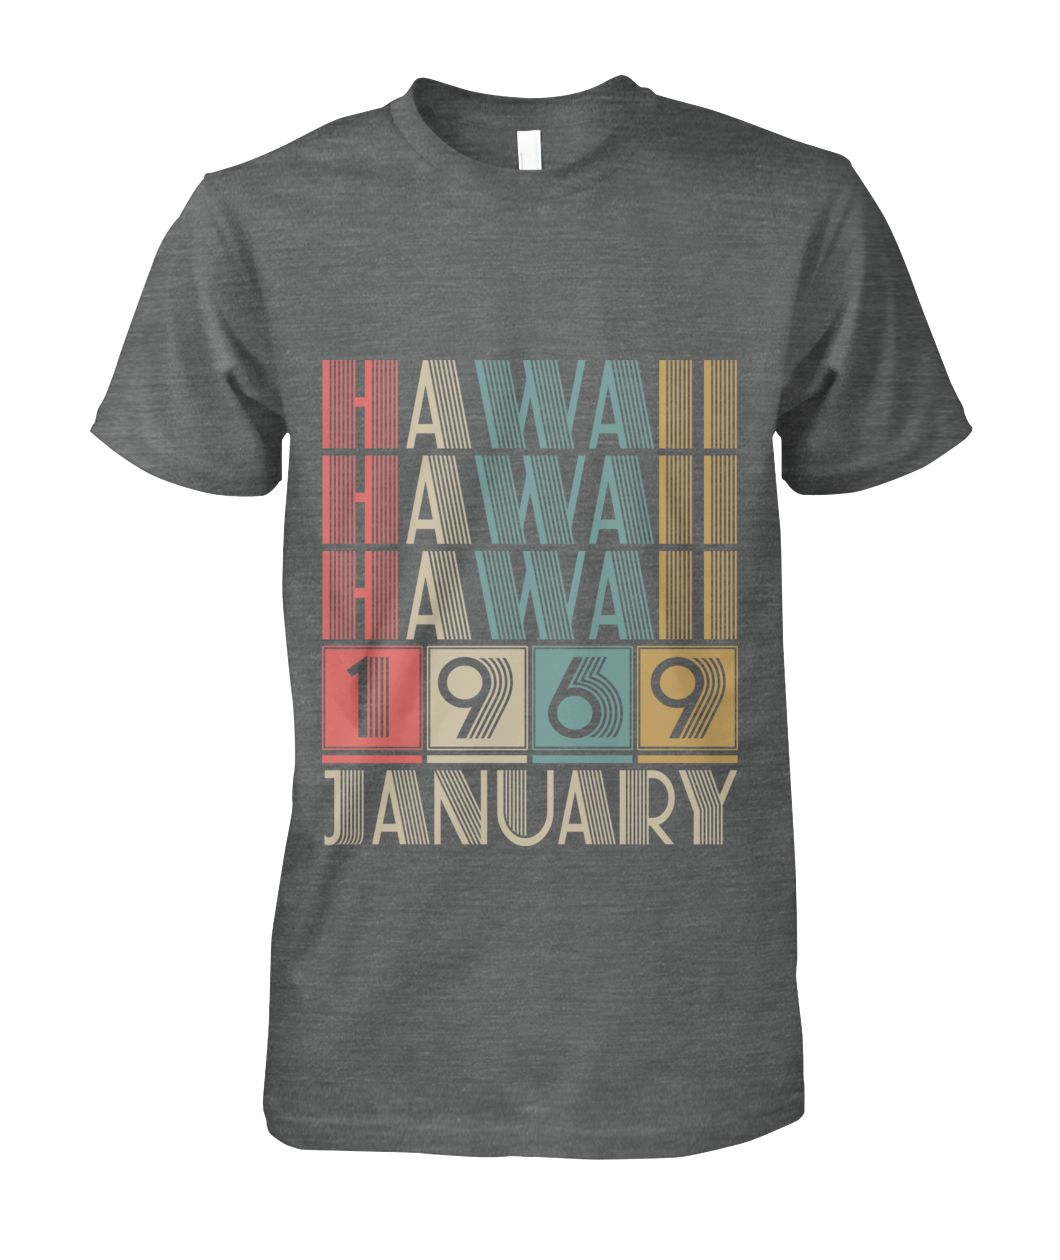 Born in Hawaii in January 1969 t shirt-Short Sleeves - TEEHOT.COM